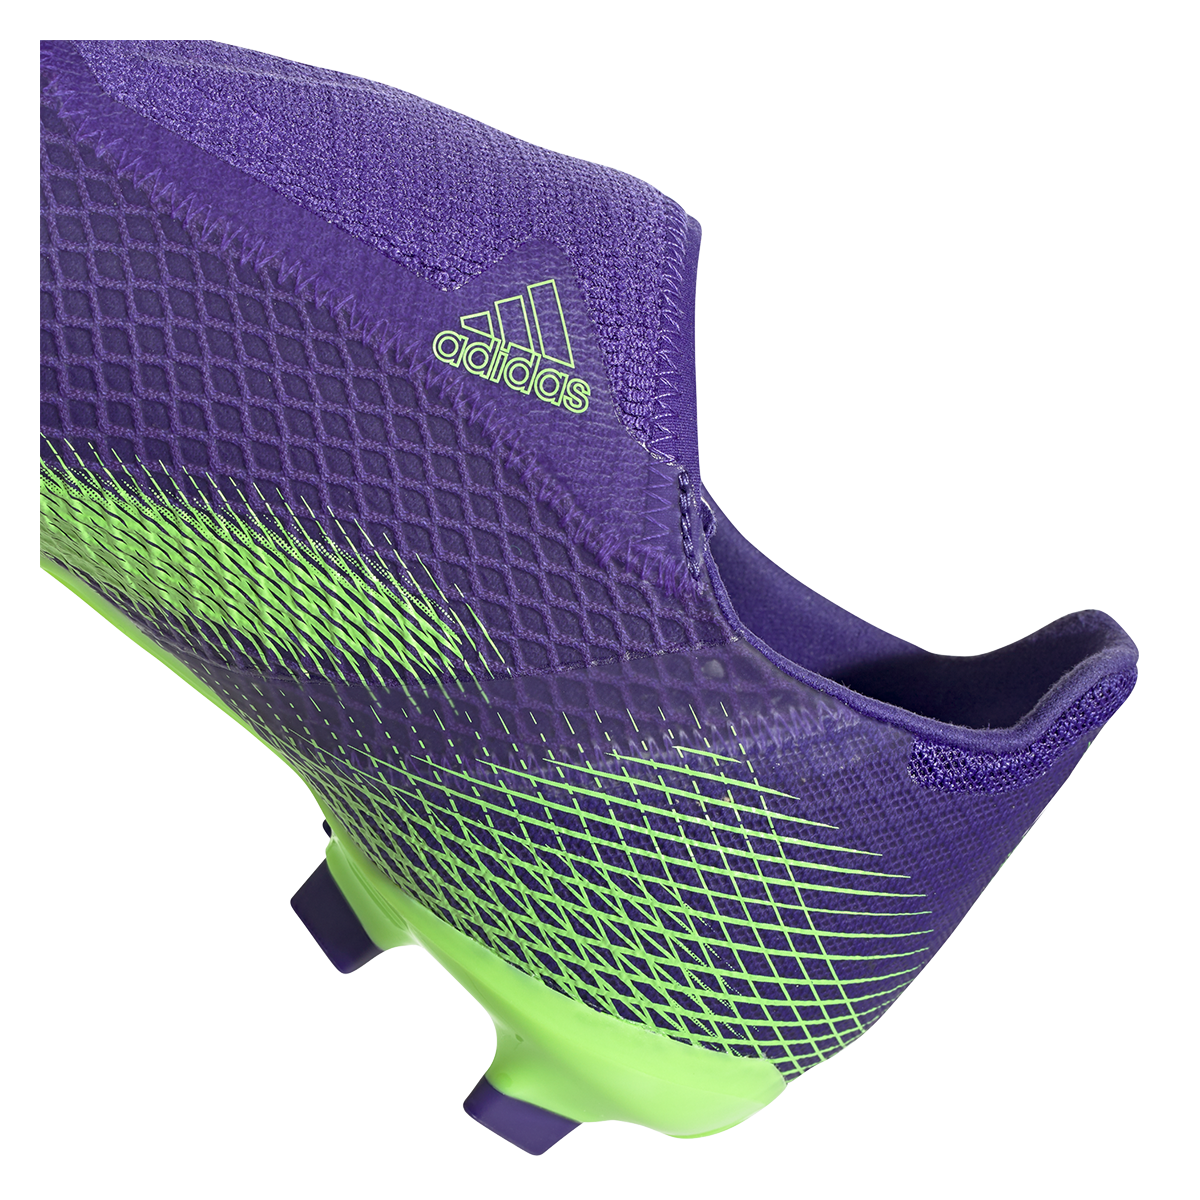 Chaussure de football adidas enfant X Ghosted.3 LL FG violet / vert fluo